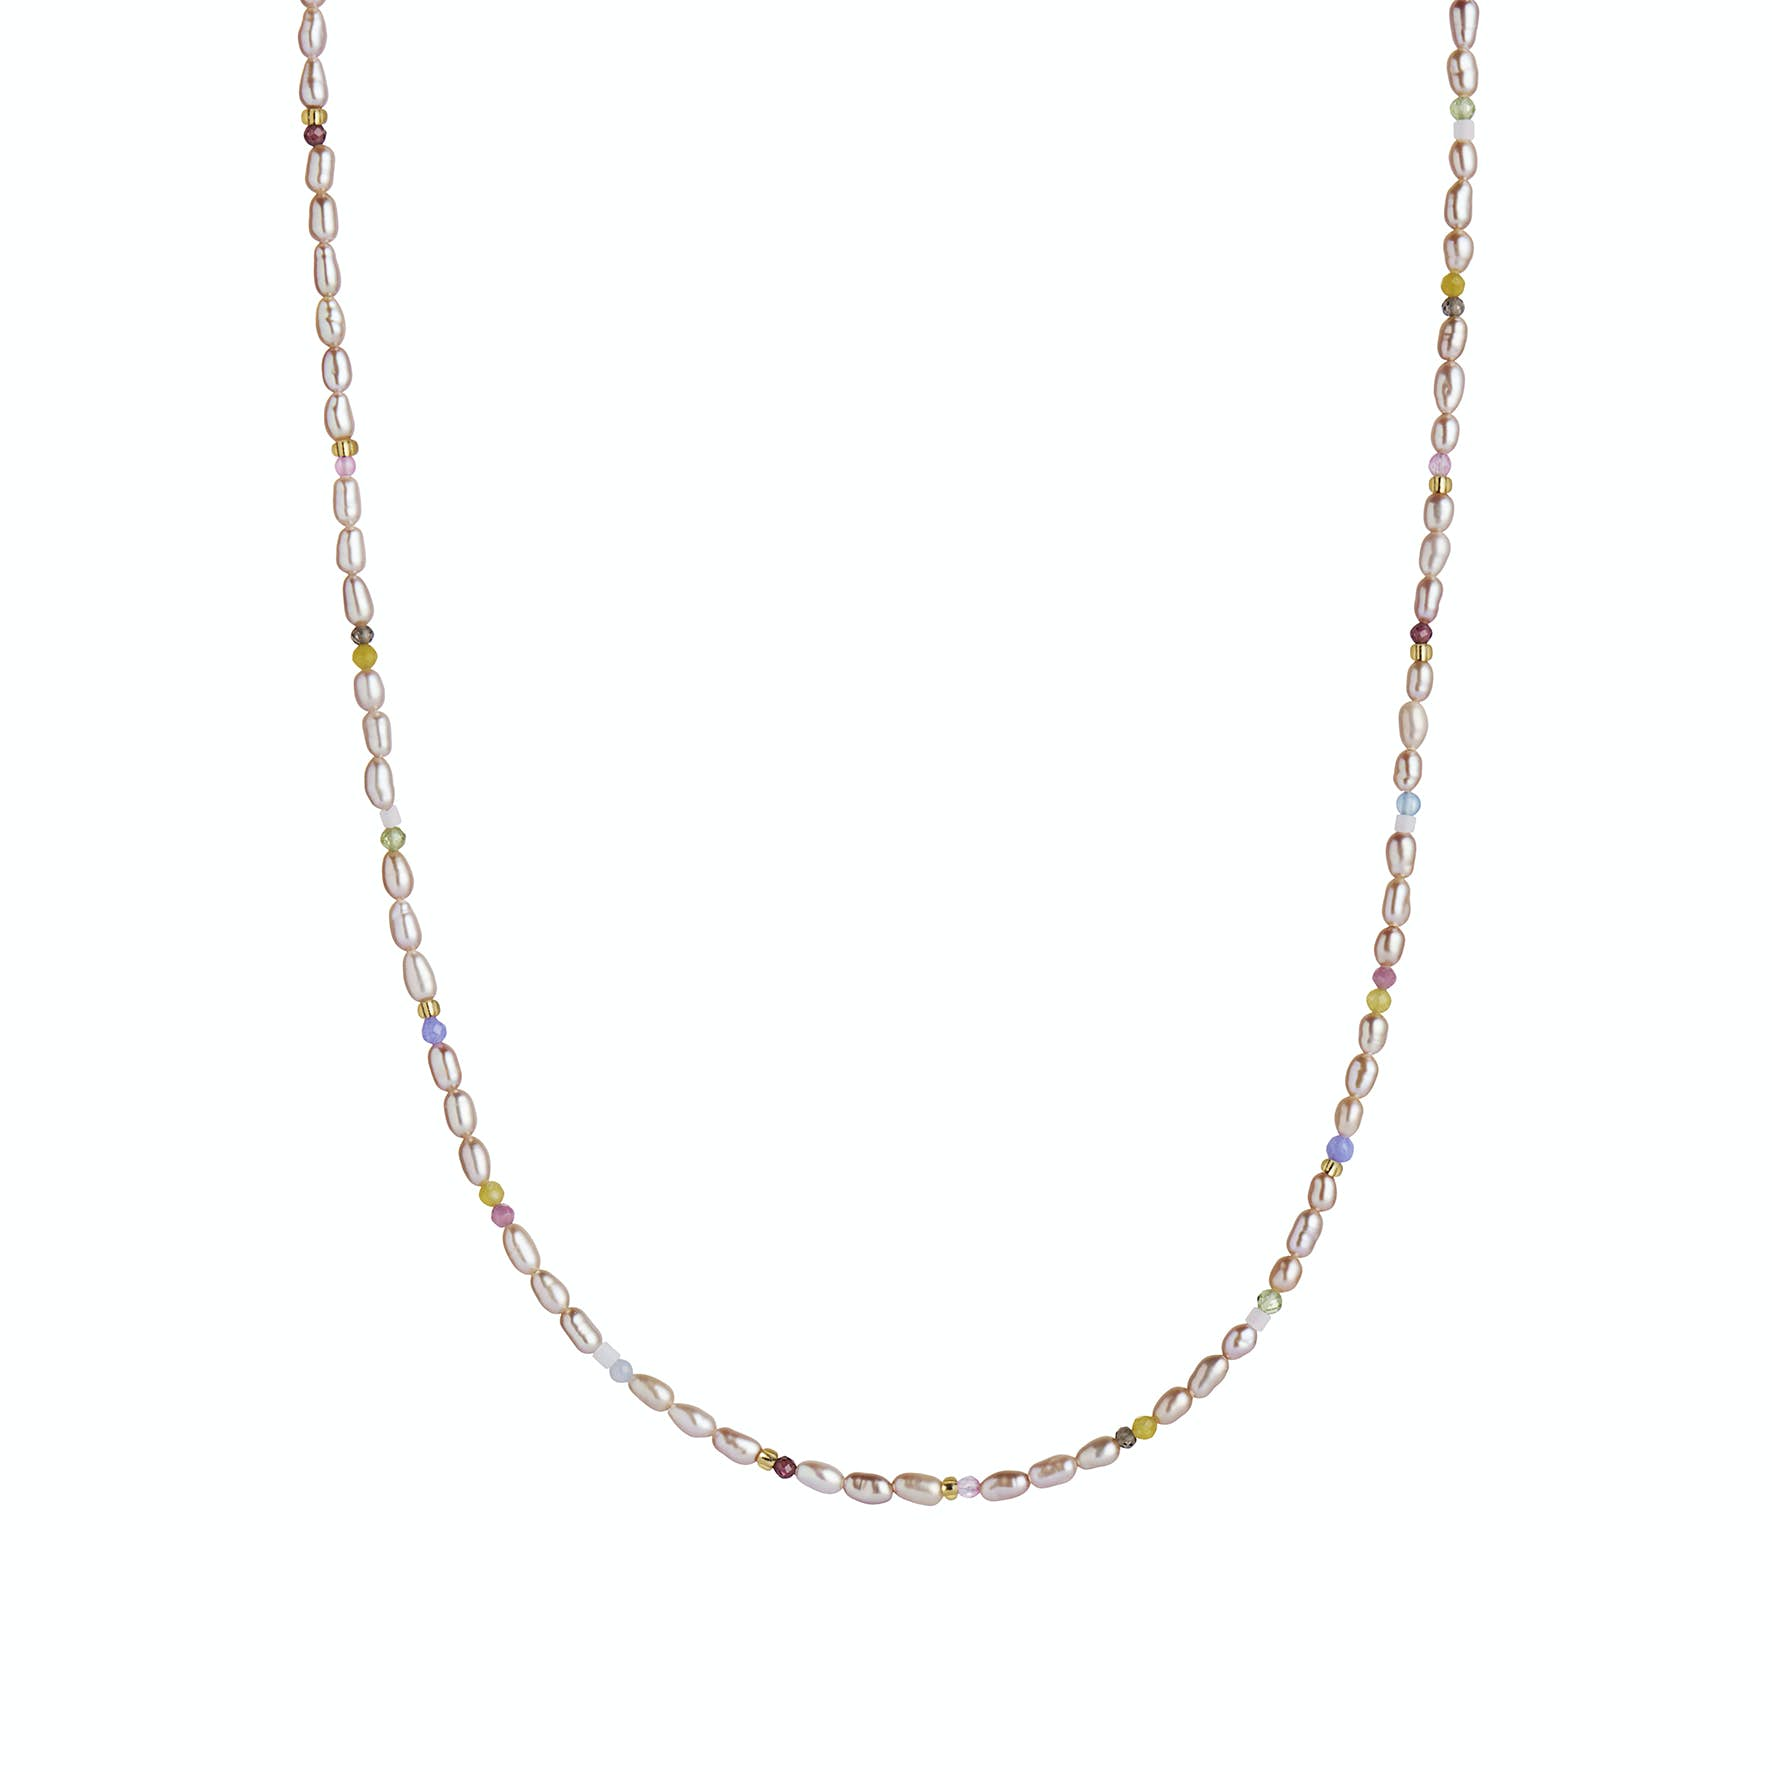 Confetti Pearl Necklace With Beige and Pastel Mix